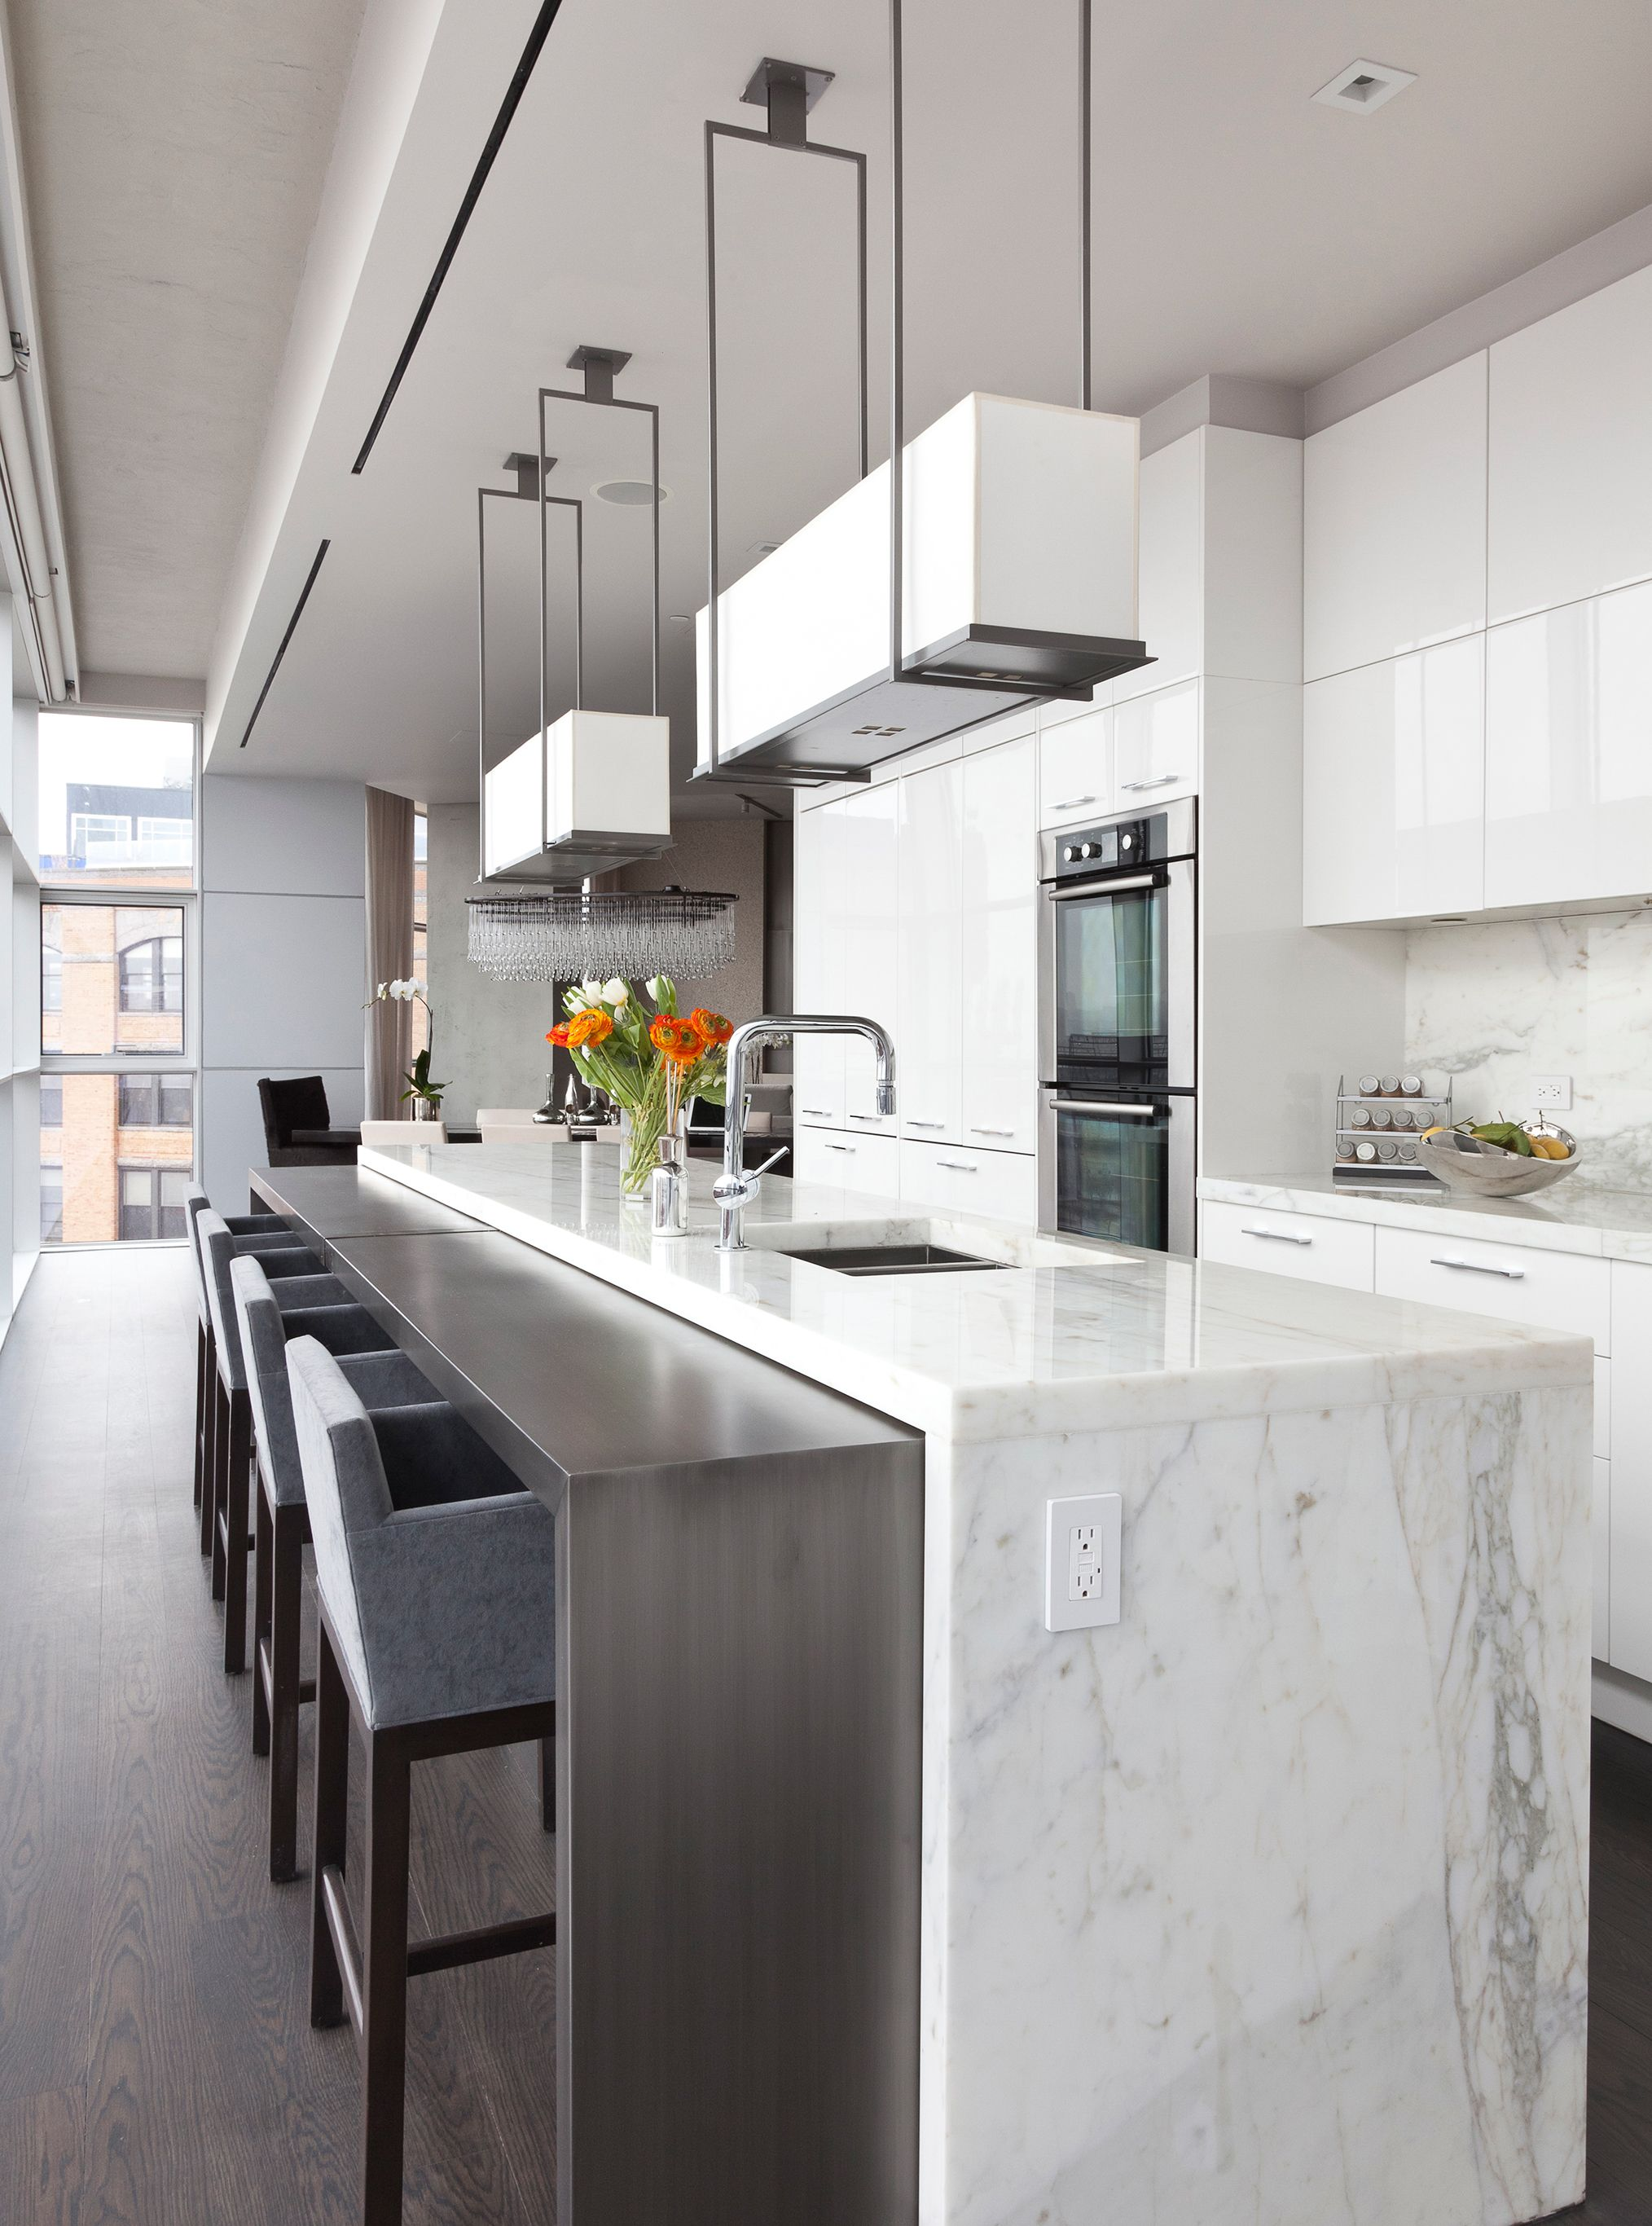 Tribeca Luxury Penthouse Interior Design By Purvi Padia Design In New York City New Kitchen Designs Luxury Kitchen Design Penthouse Kitchen